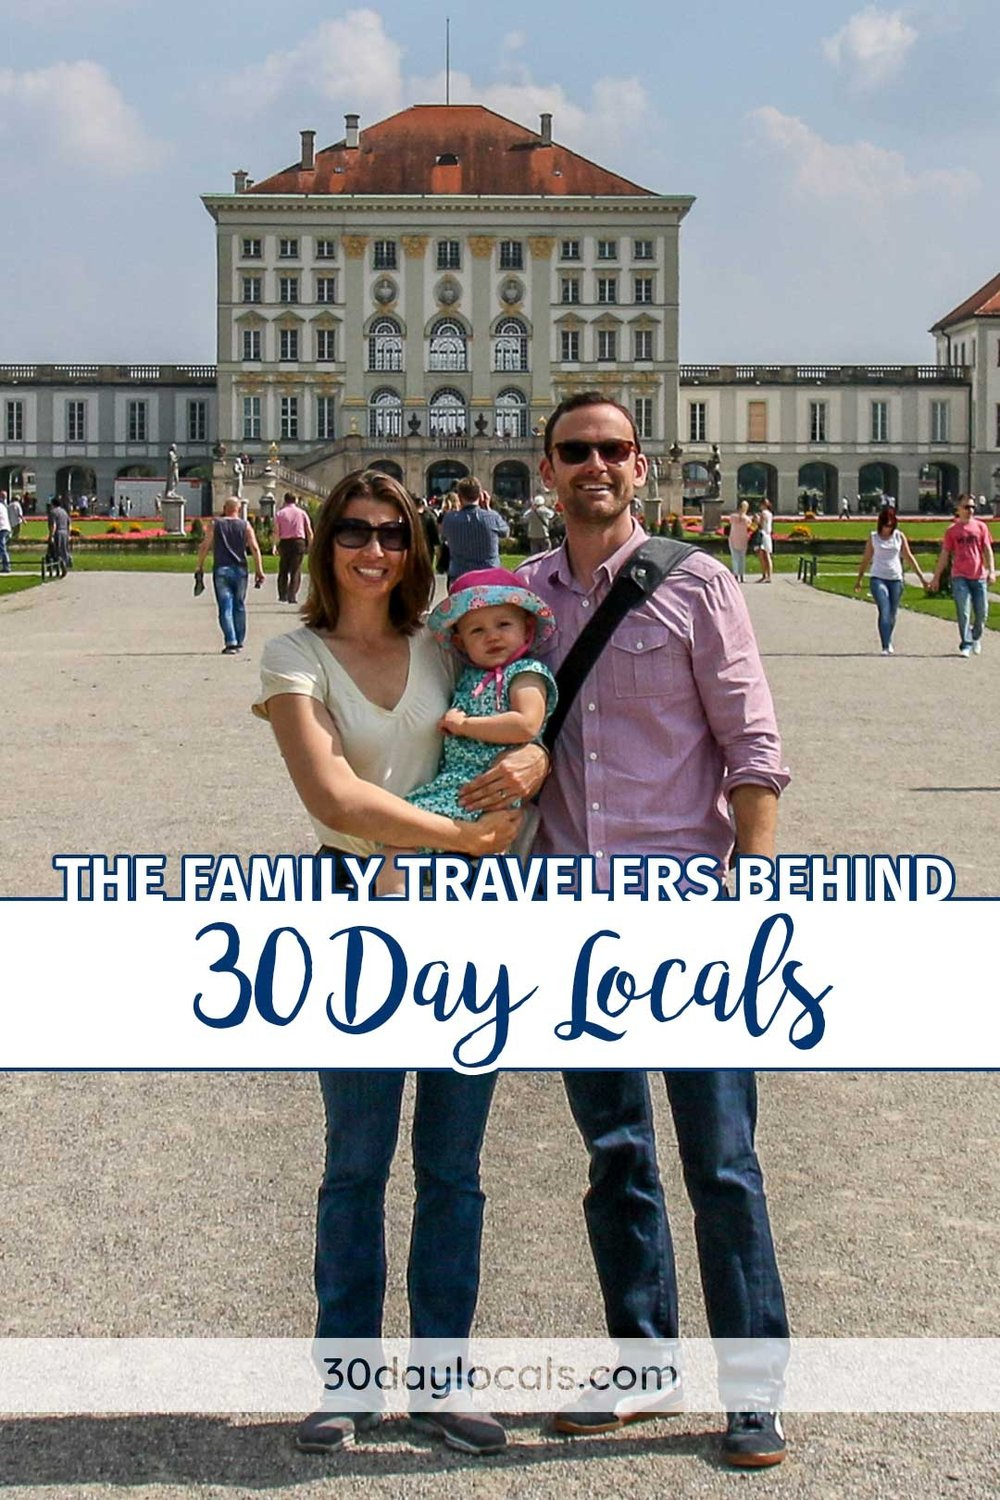 family-travelers-30-day-locals.jpg